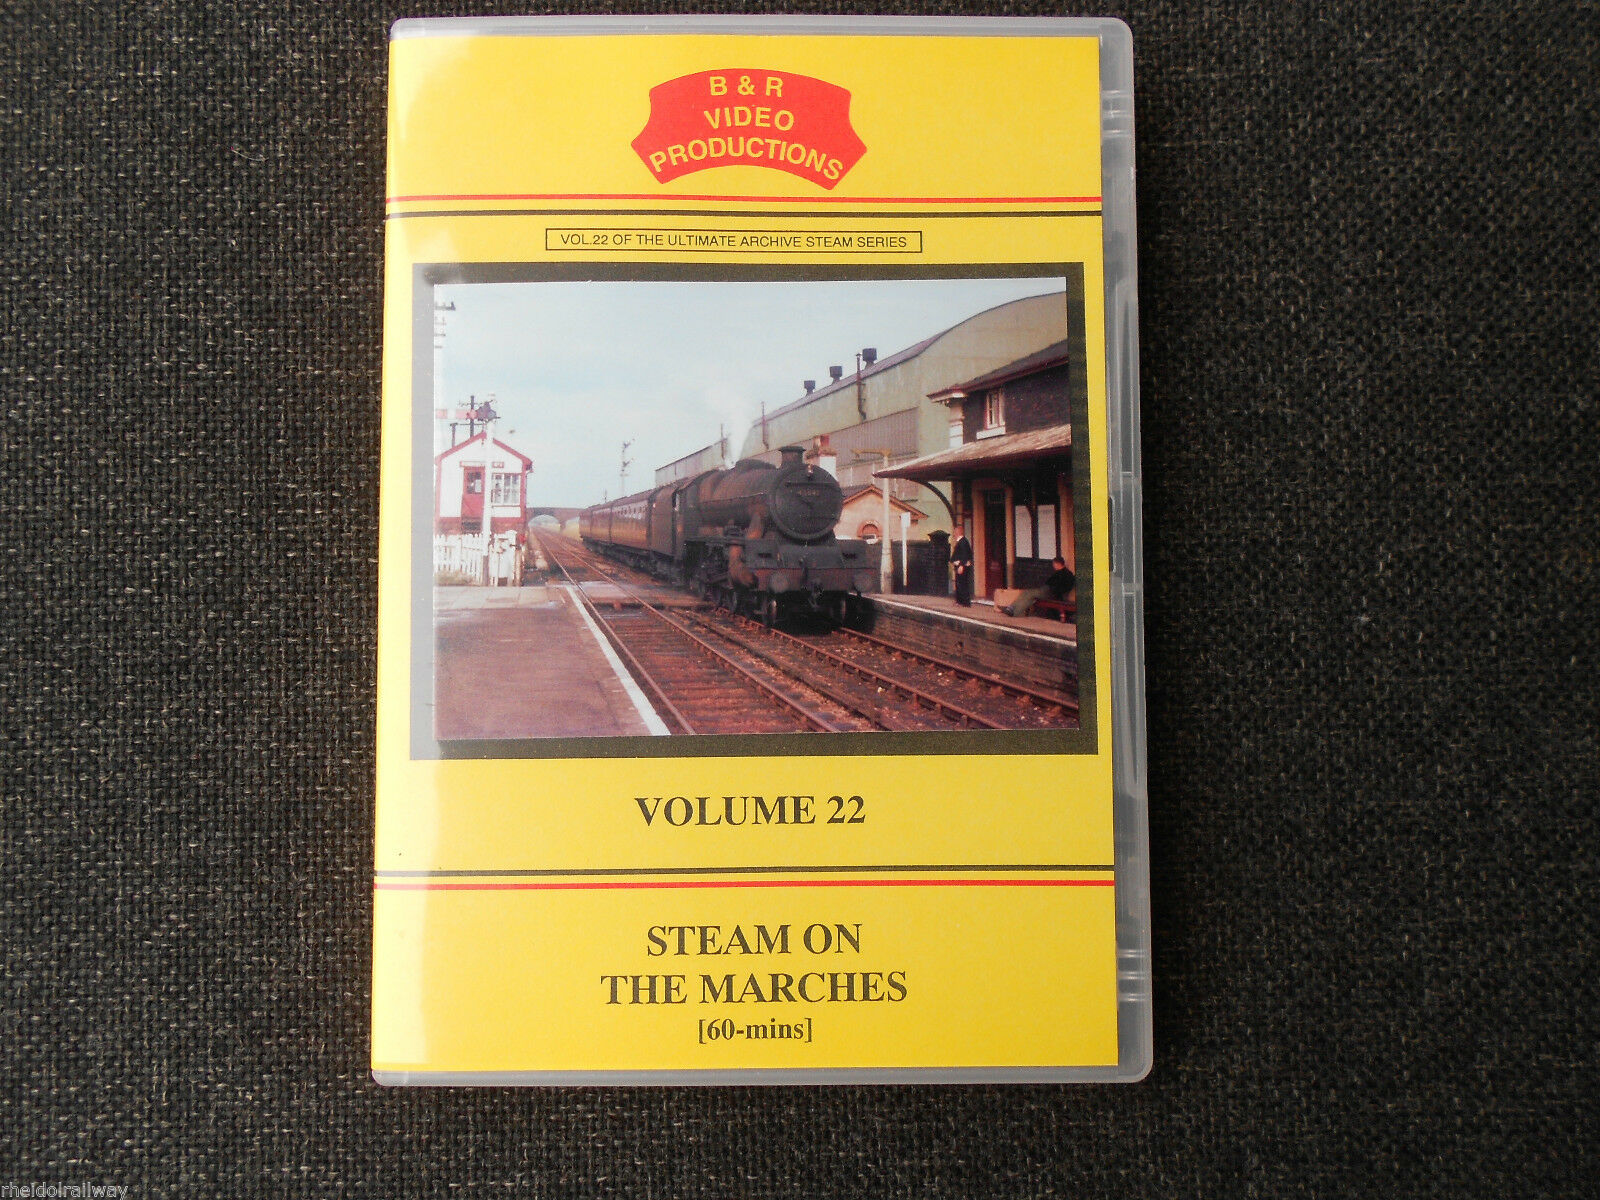 Shropshire, Bishops Castle, Clee Hill, Steam on the Marches Vol.22 DVD B&R - The Vale of Rheidol Railway